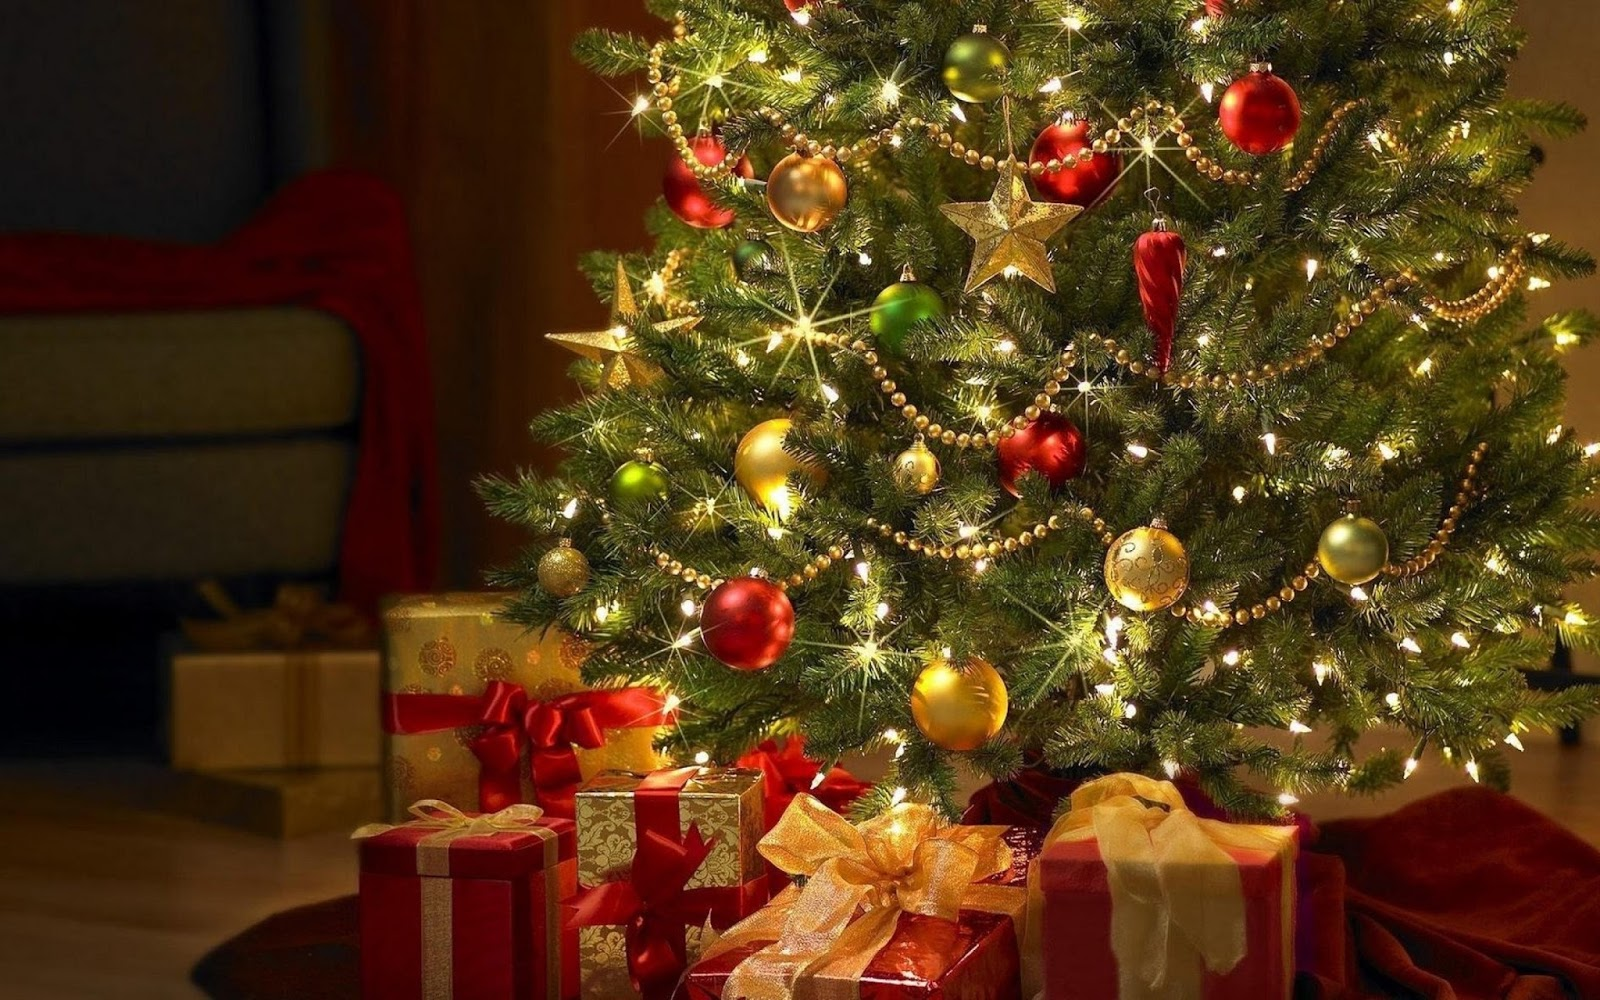 Christmas Tree Pictures To Color - Beautiful Christmas Tree Backgrounds , HD Wallpaper & Backgrounds